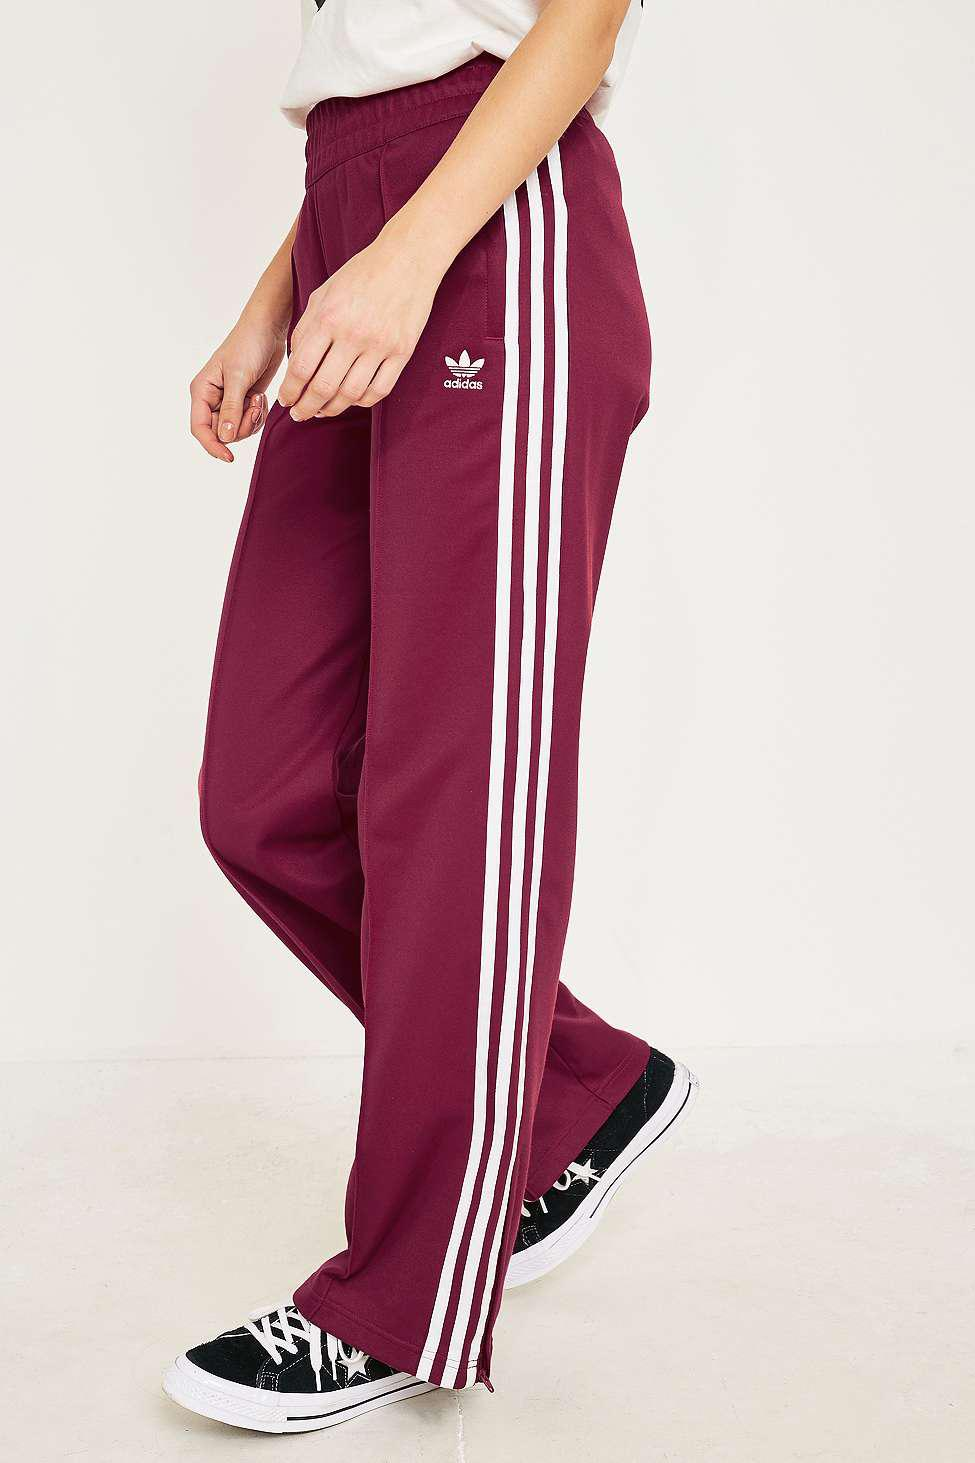 5d4147c37408 adidas Originals Contemporary Bb Ruby Track Pants - Womens Uk 6 in ...